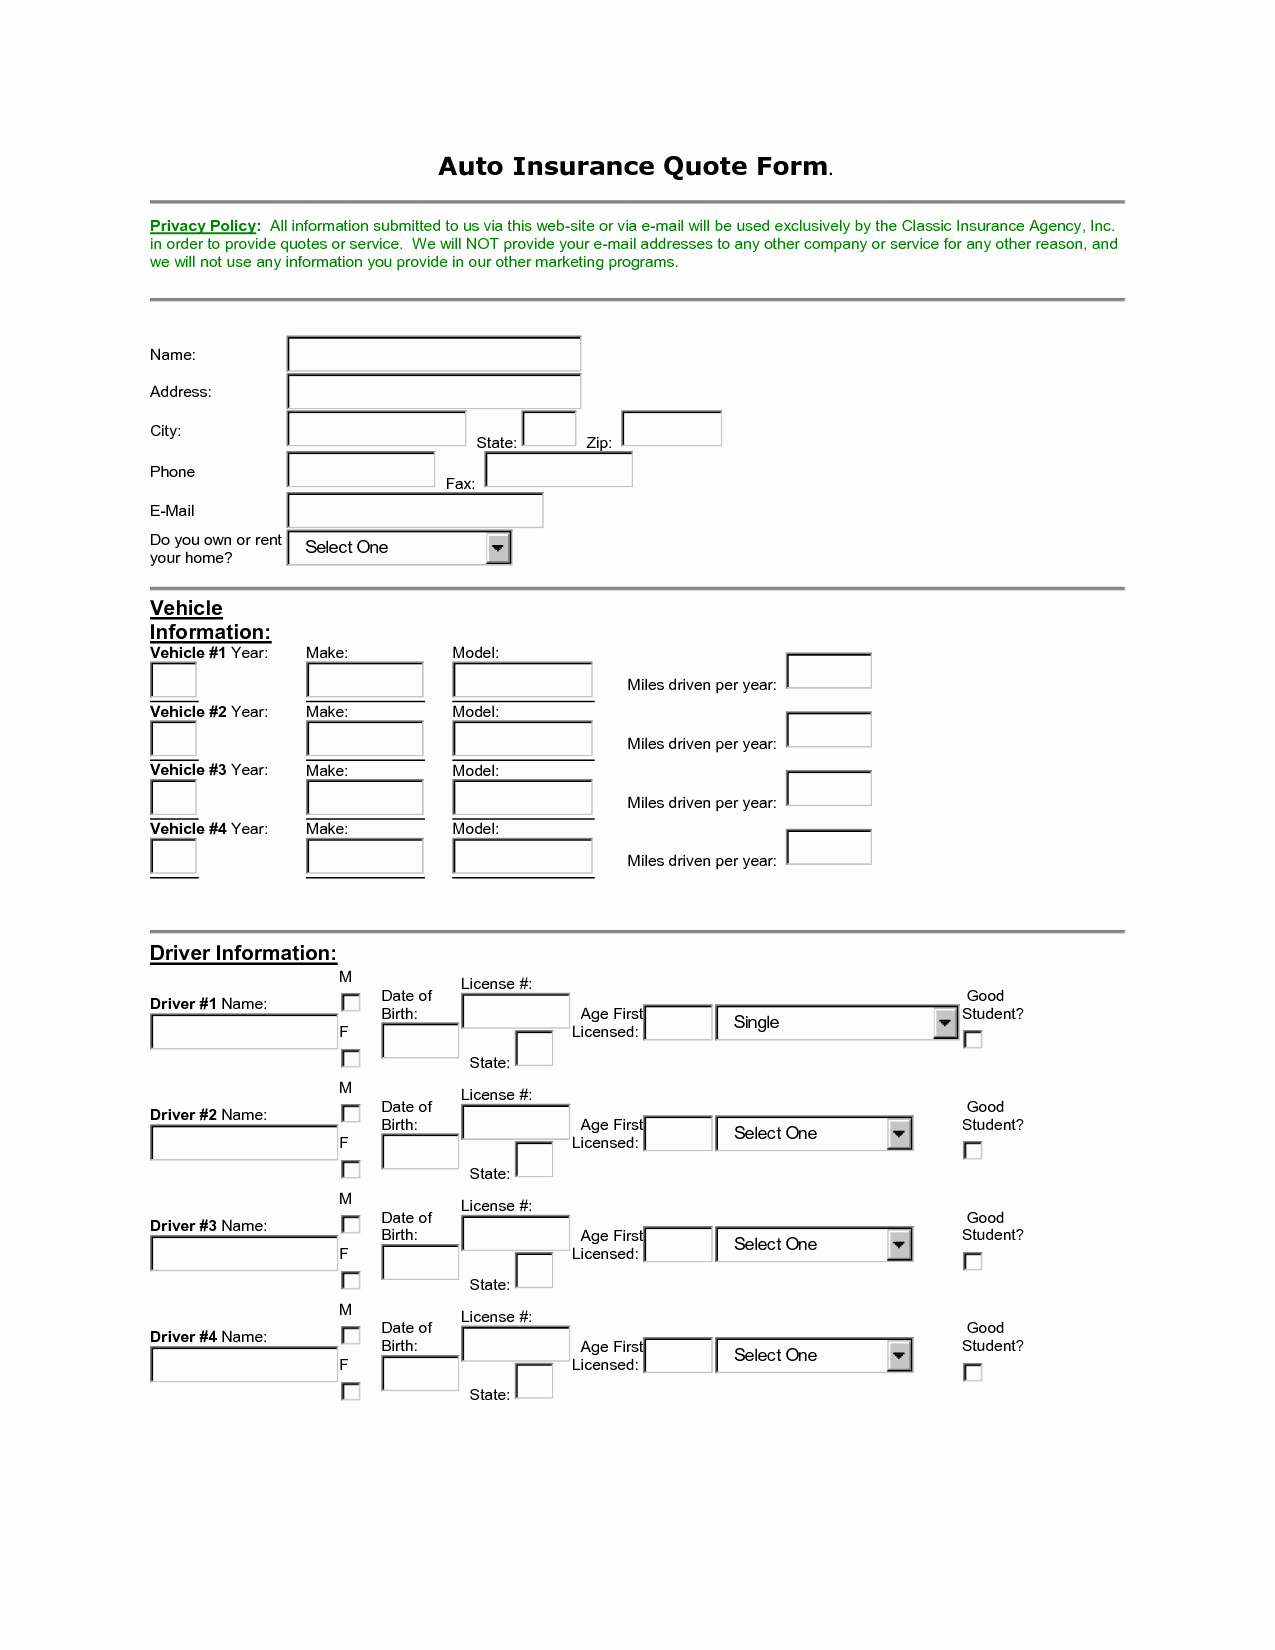 Auto Insurance Quote Sheet Template Best Of 14 Best Of Sample Excel Bud Worksheets Monthly